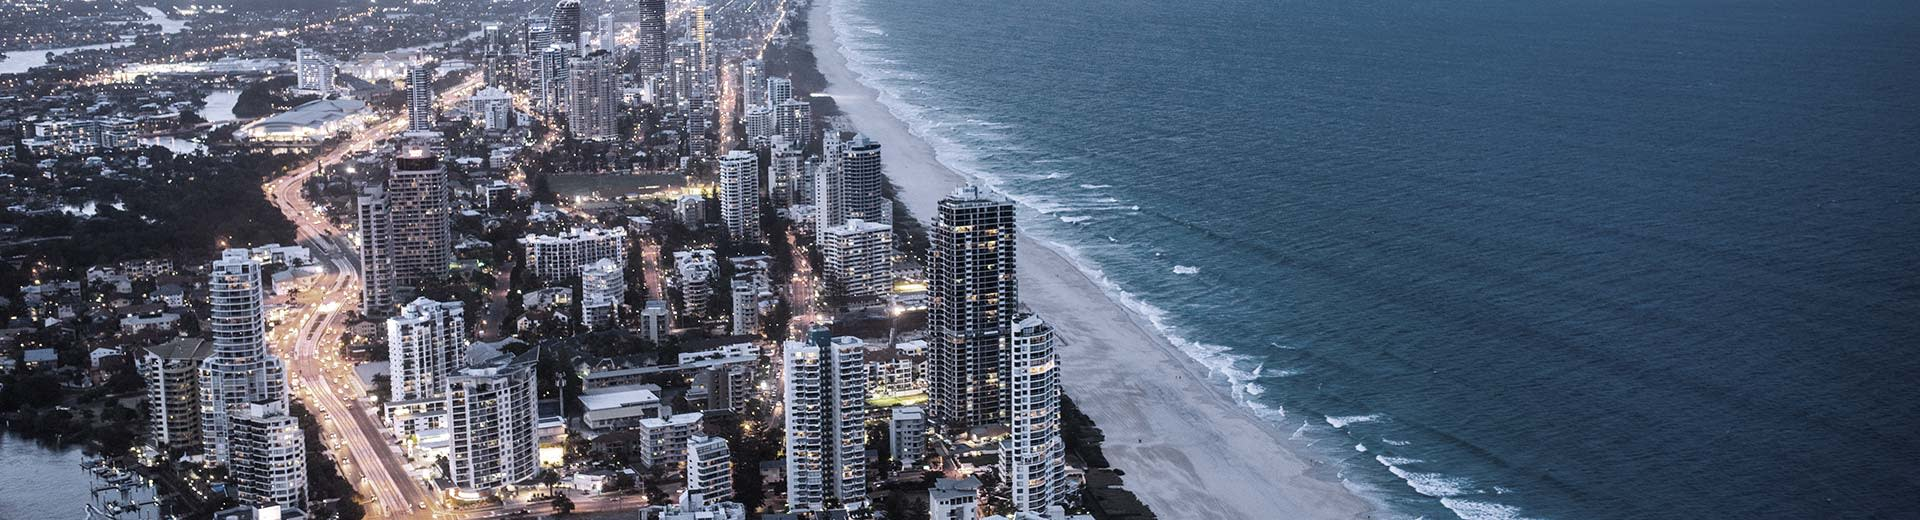 The high-rise buildings of Gold Coast stretch out along the gorgeous shoreline